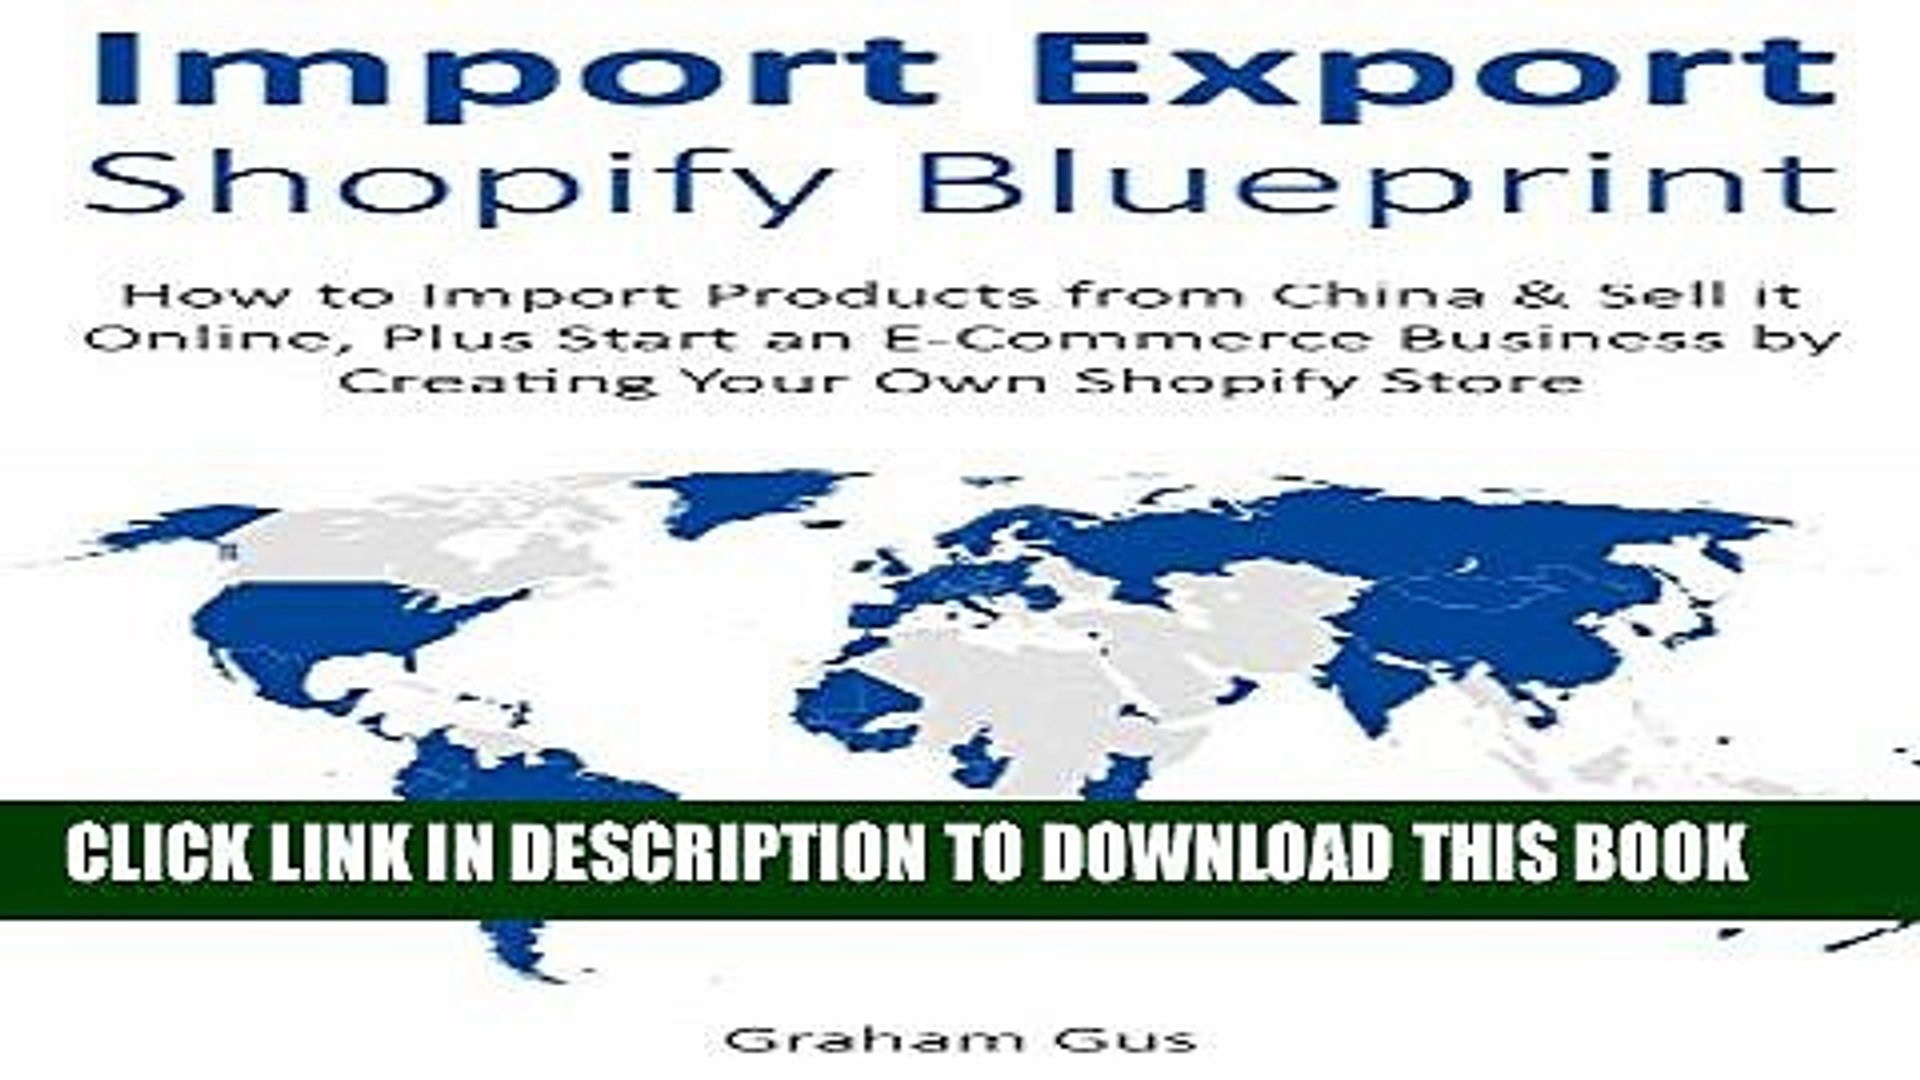 [PDF] IMPORT EXPORT SHOPIFY BLUEPRINT: How to Import Products from China  Sell it Online, Plus